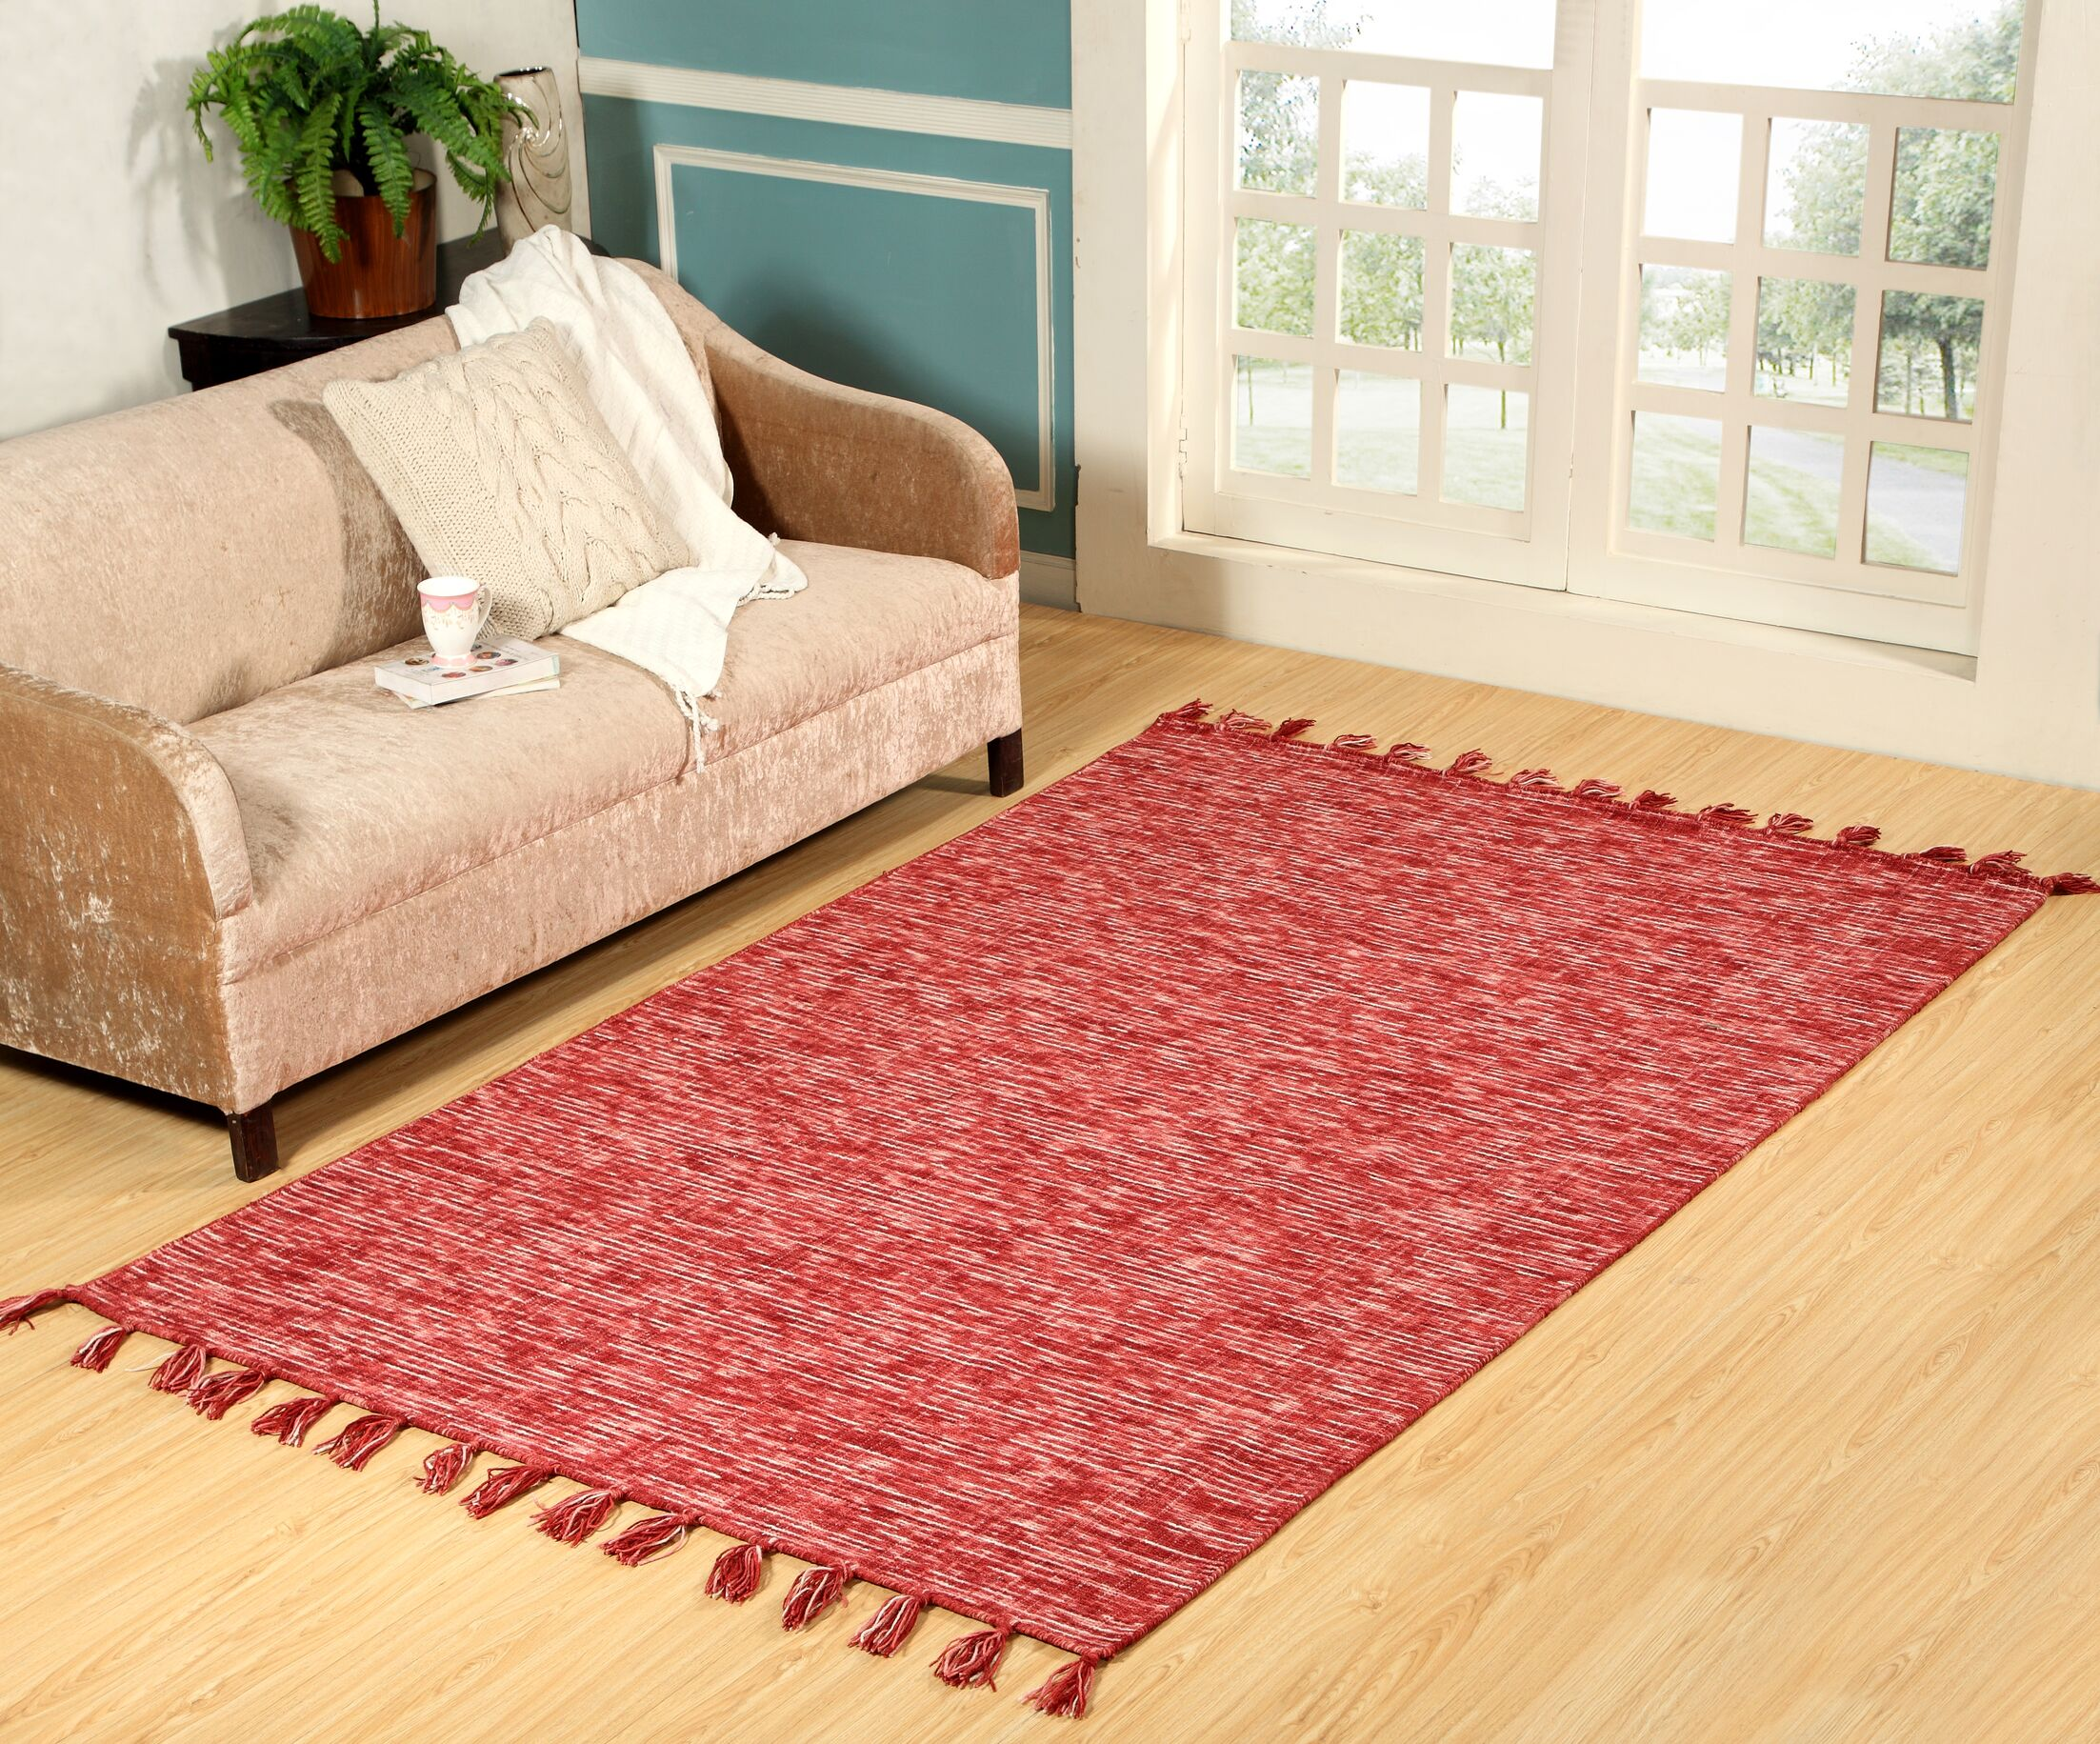 Willey Hand-Woven Wool Red Area Rug Rug Size: Rectangle 5' x 8'